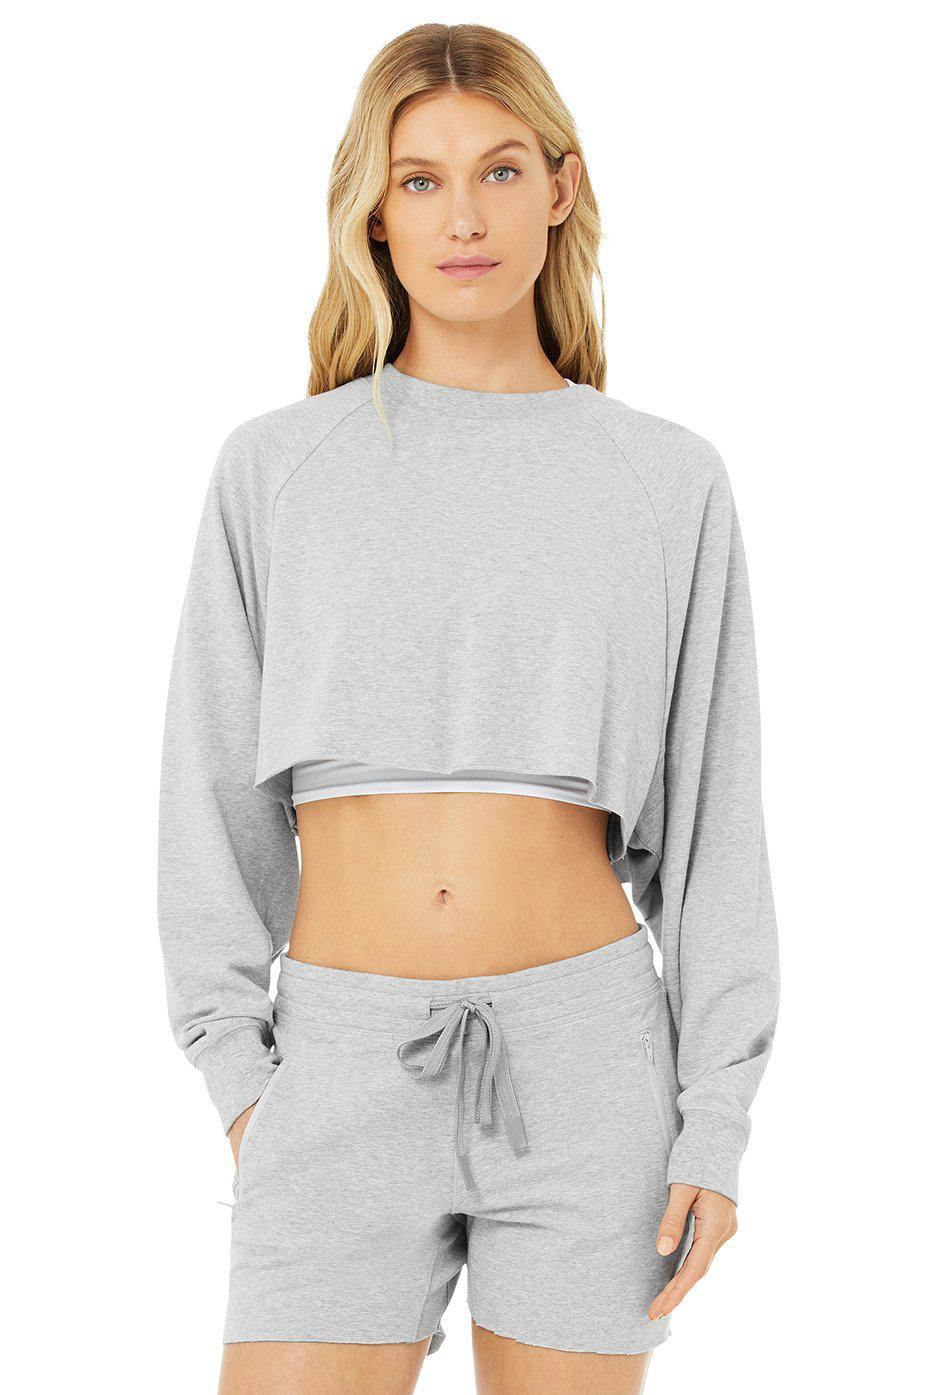 Double Take Pullover - Dove Grey Heather